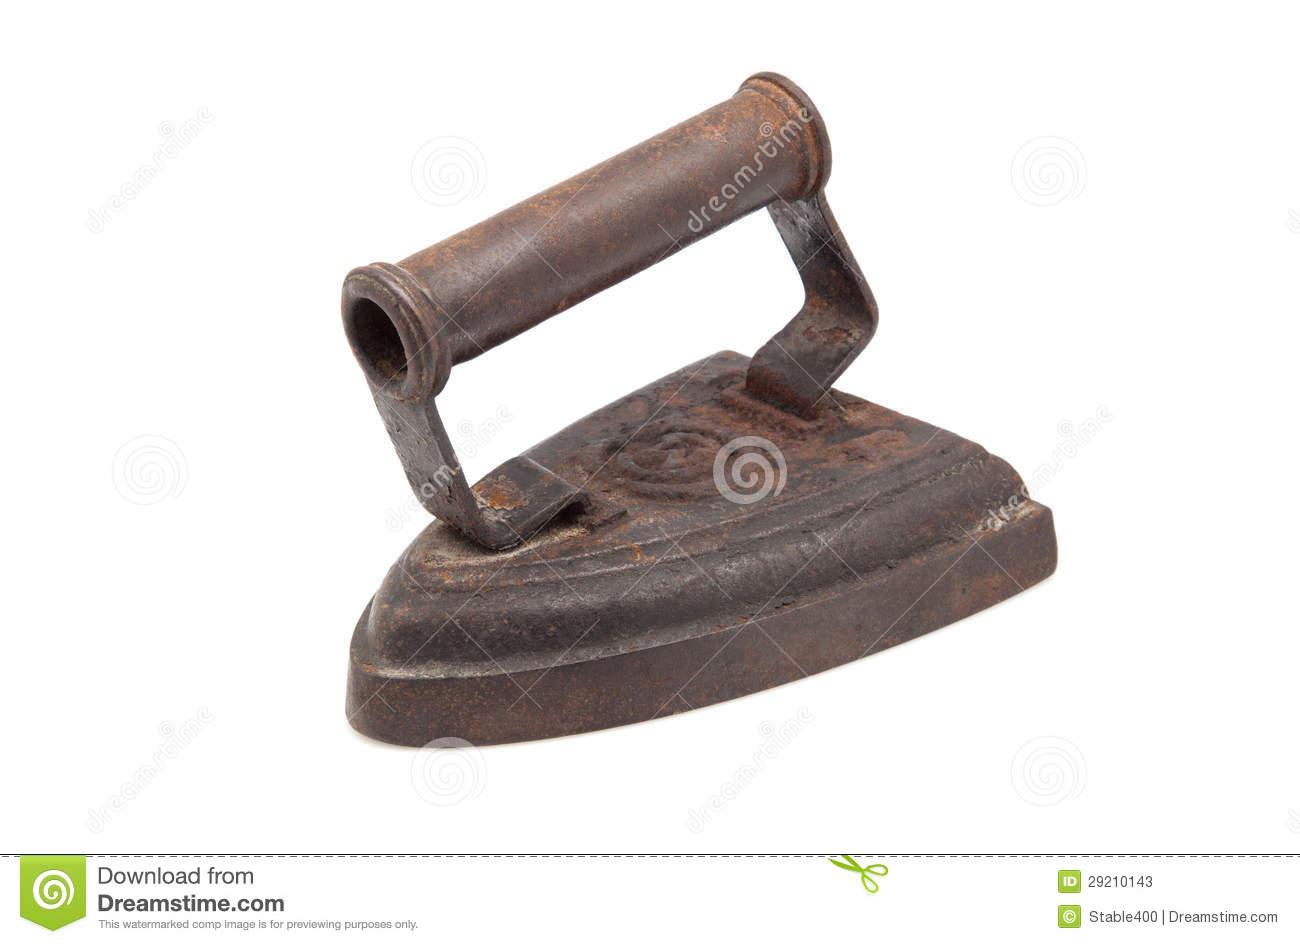 An Old Fashioned Flat Iron Stock Photos - Image: 29210143